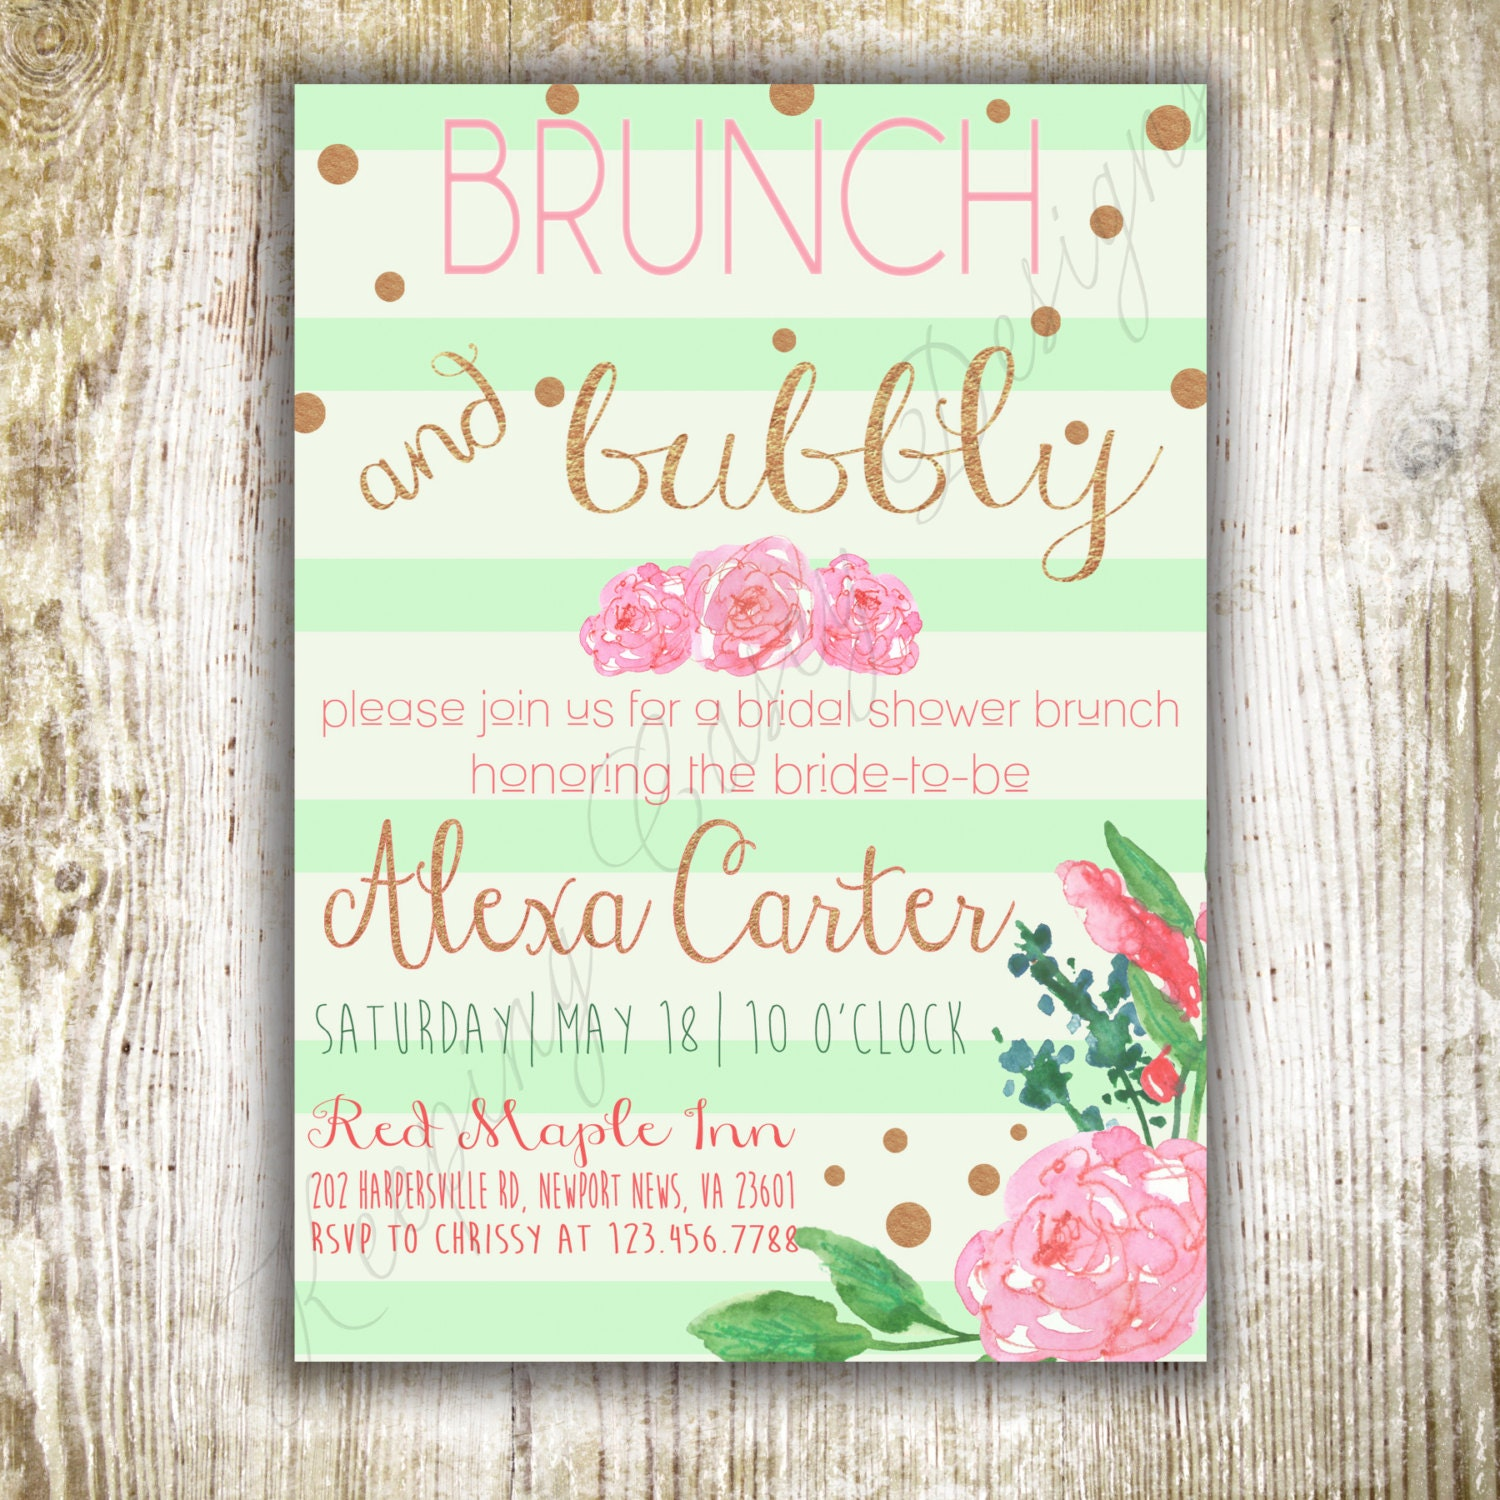 Mint Brunch And Bubbly Invitation Bridal By